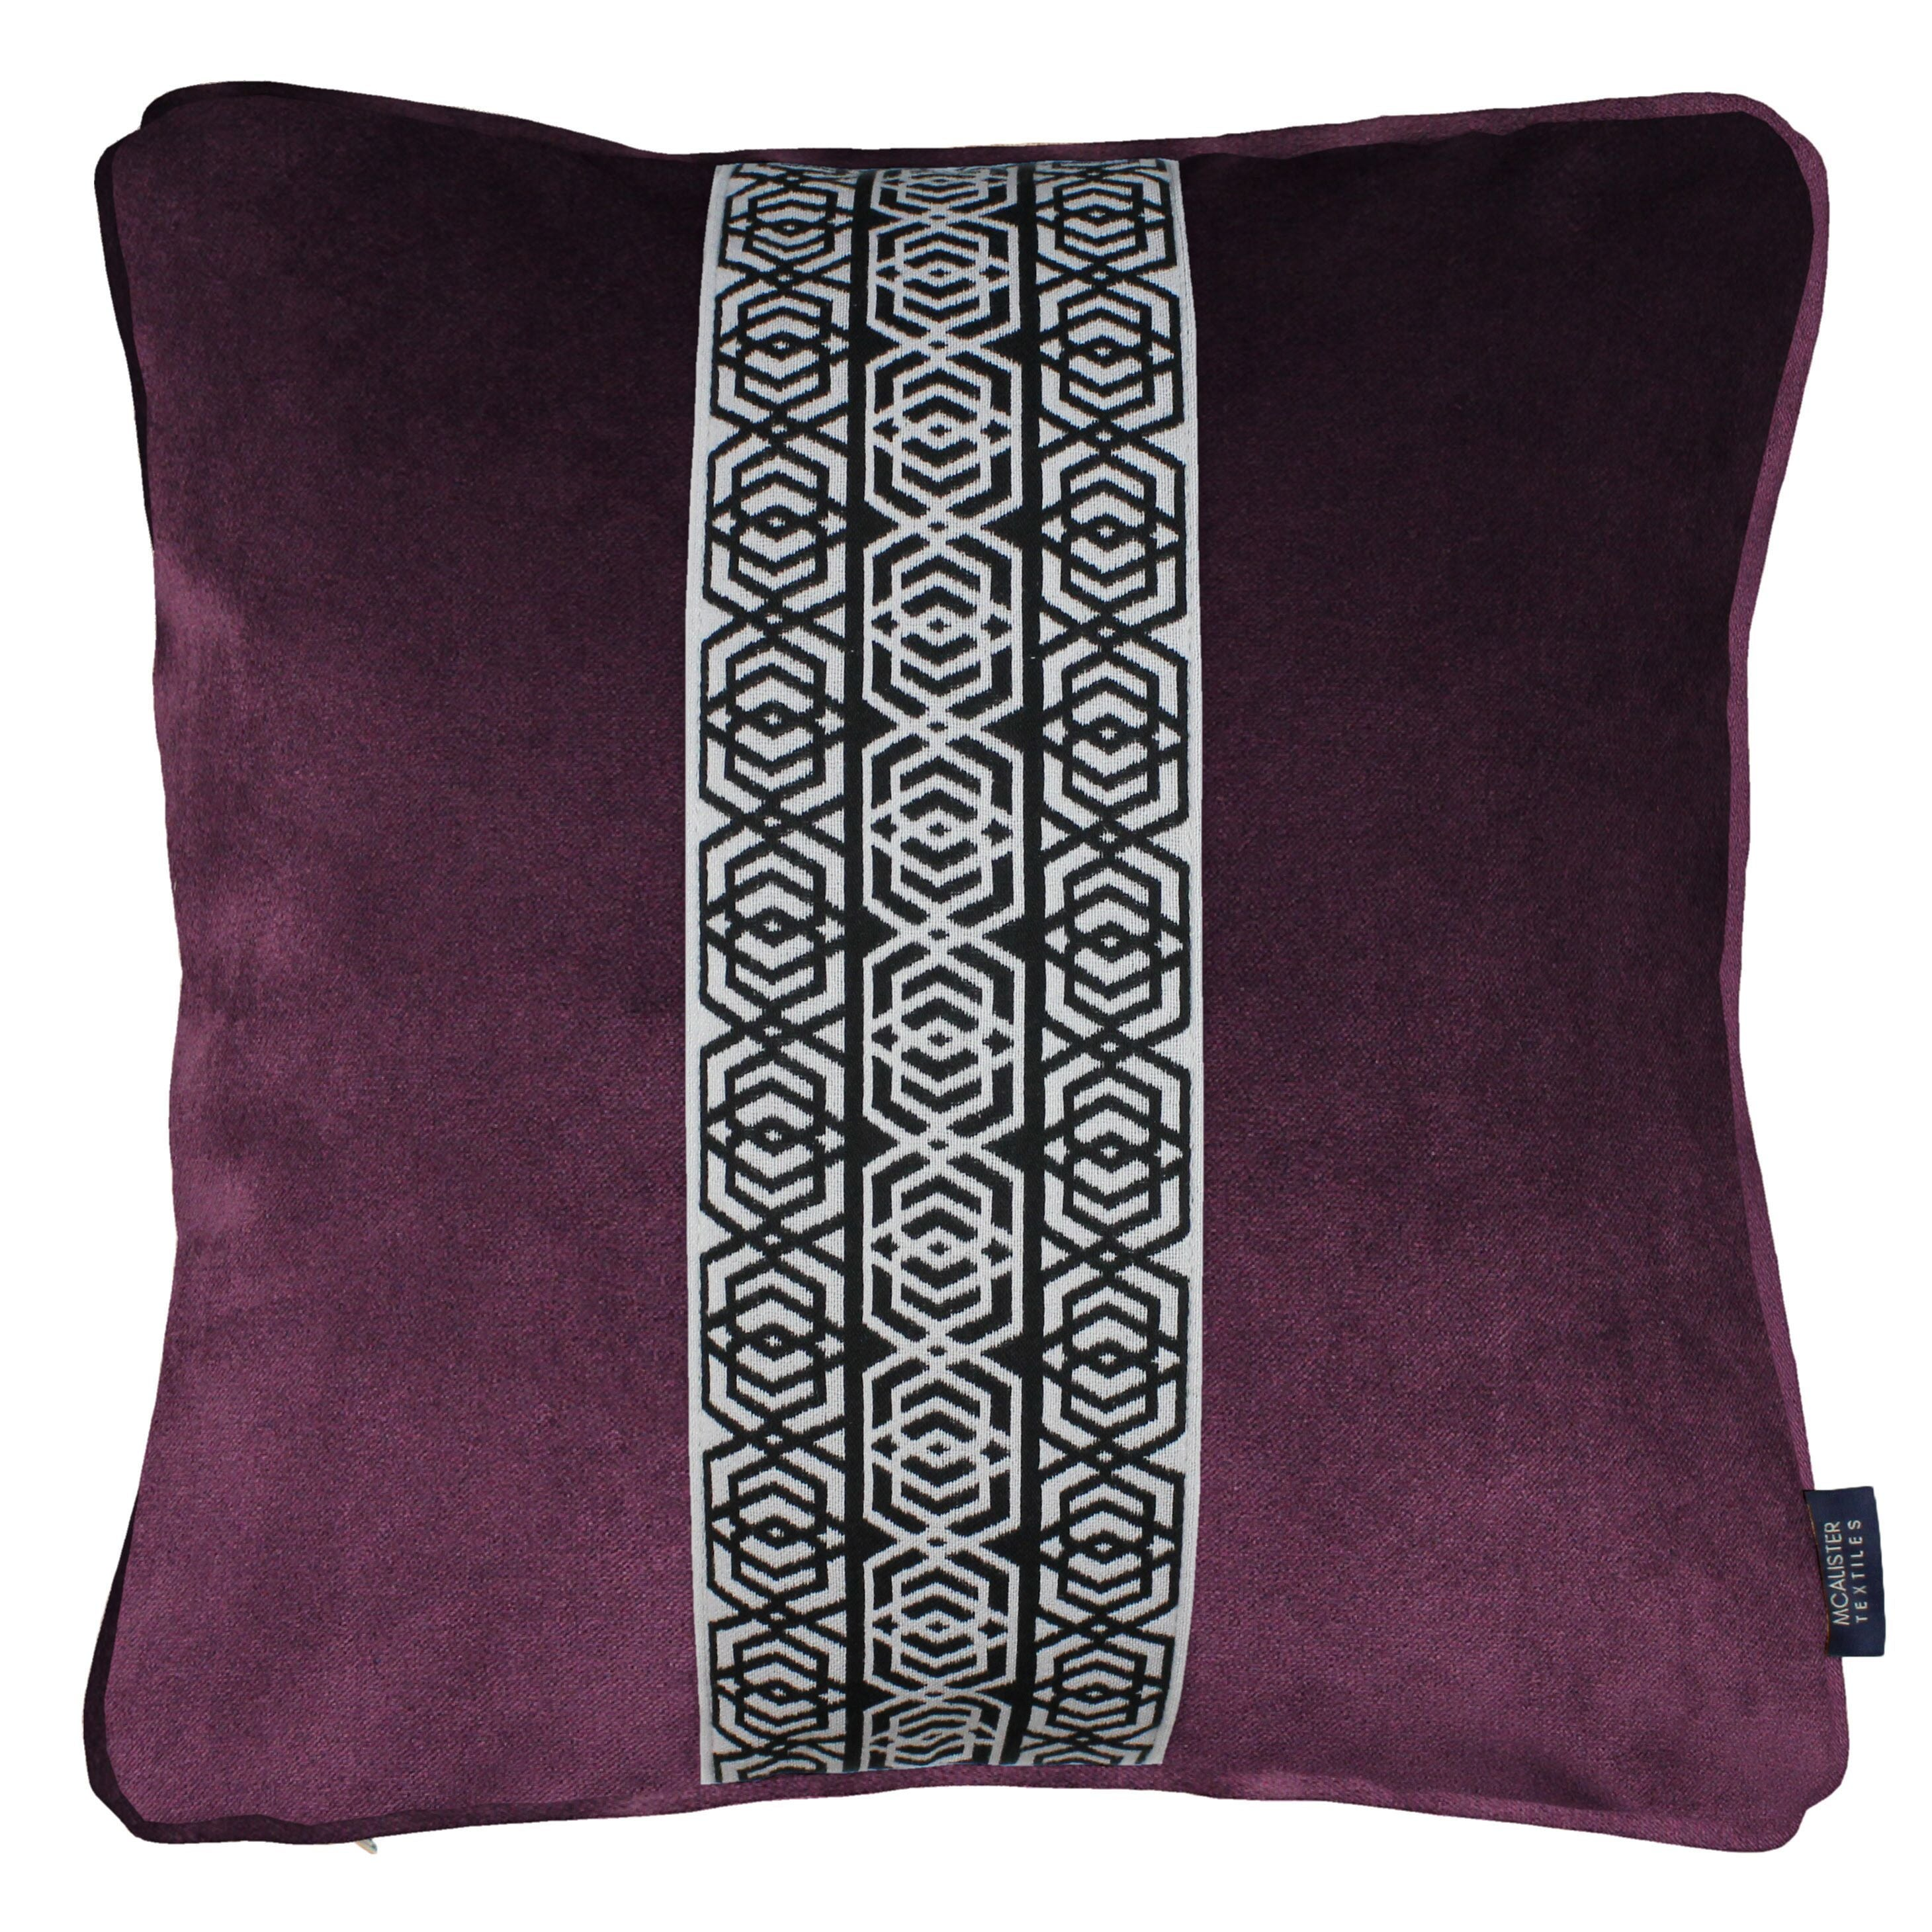 McAlister Textiles Coba Striped Aubergine Purple Velvet Cushion Cushions and Covers Polyester Filler 43cm x 43cm